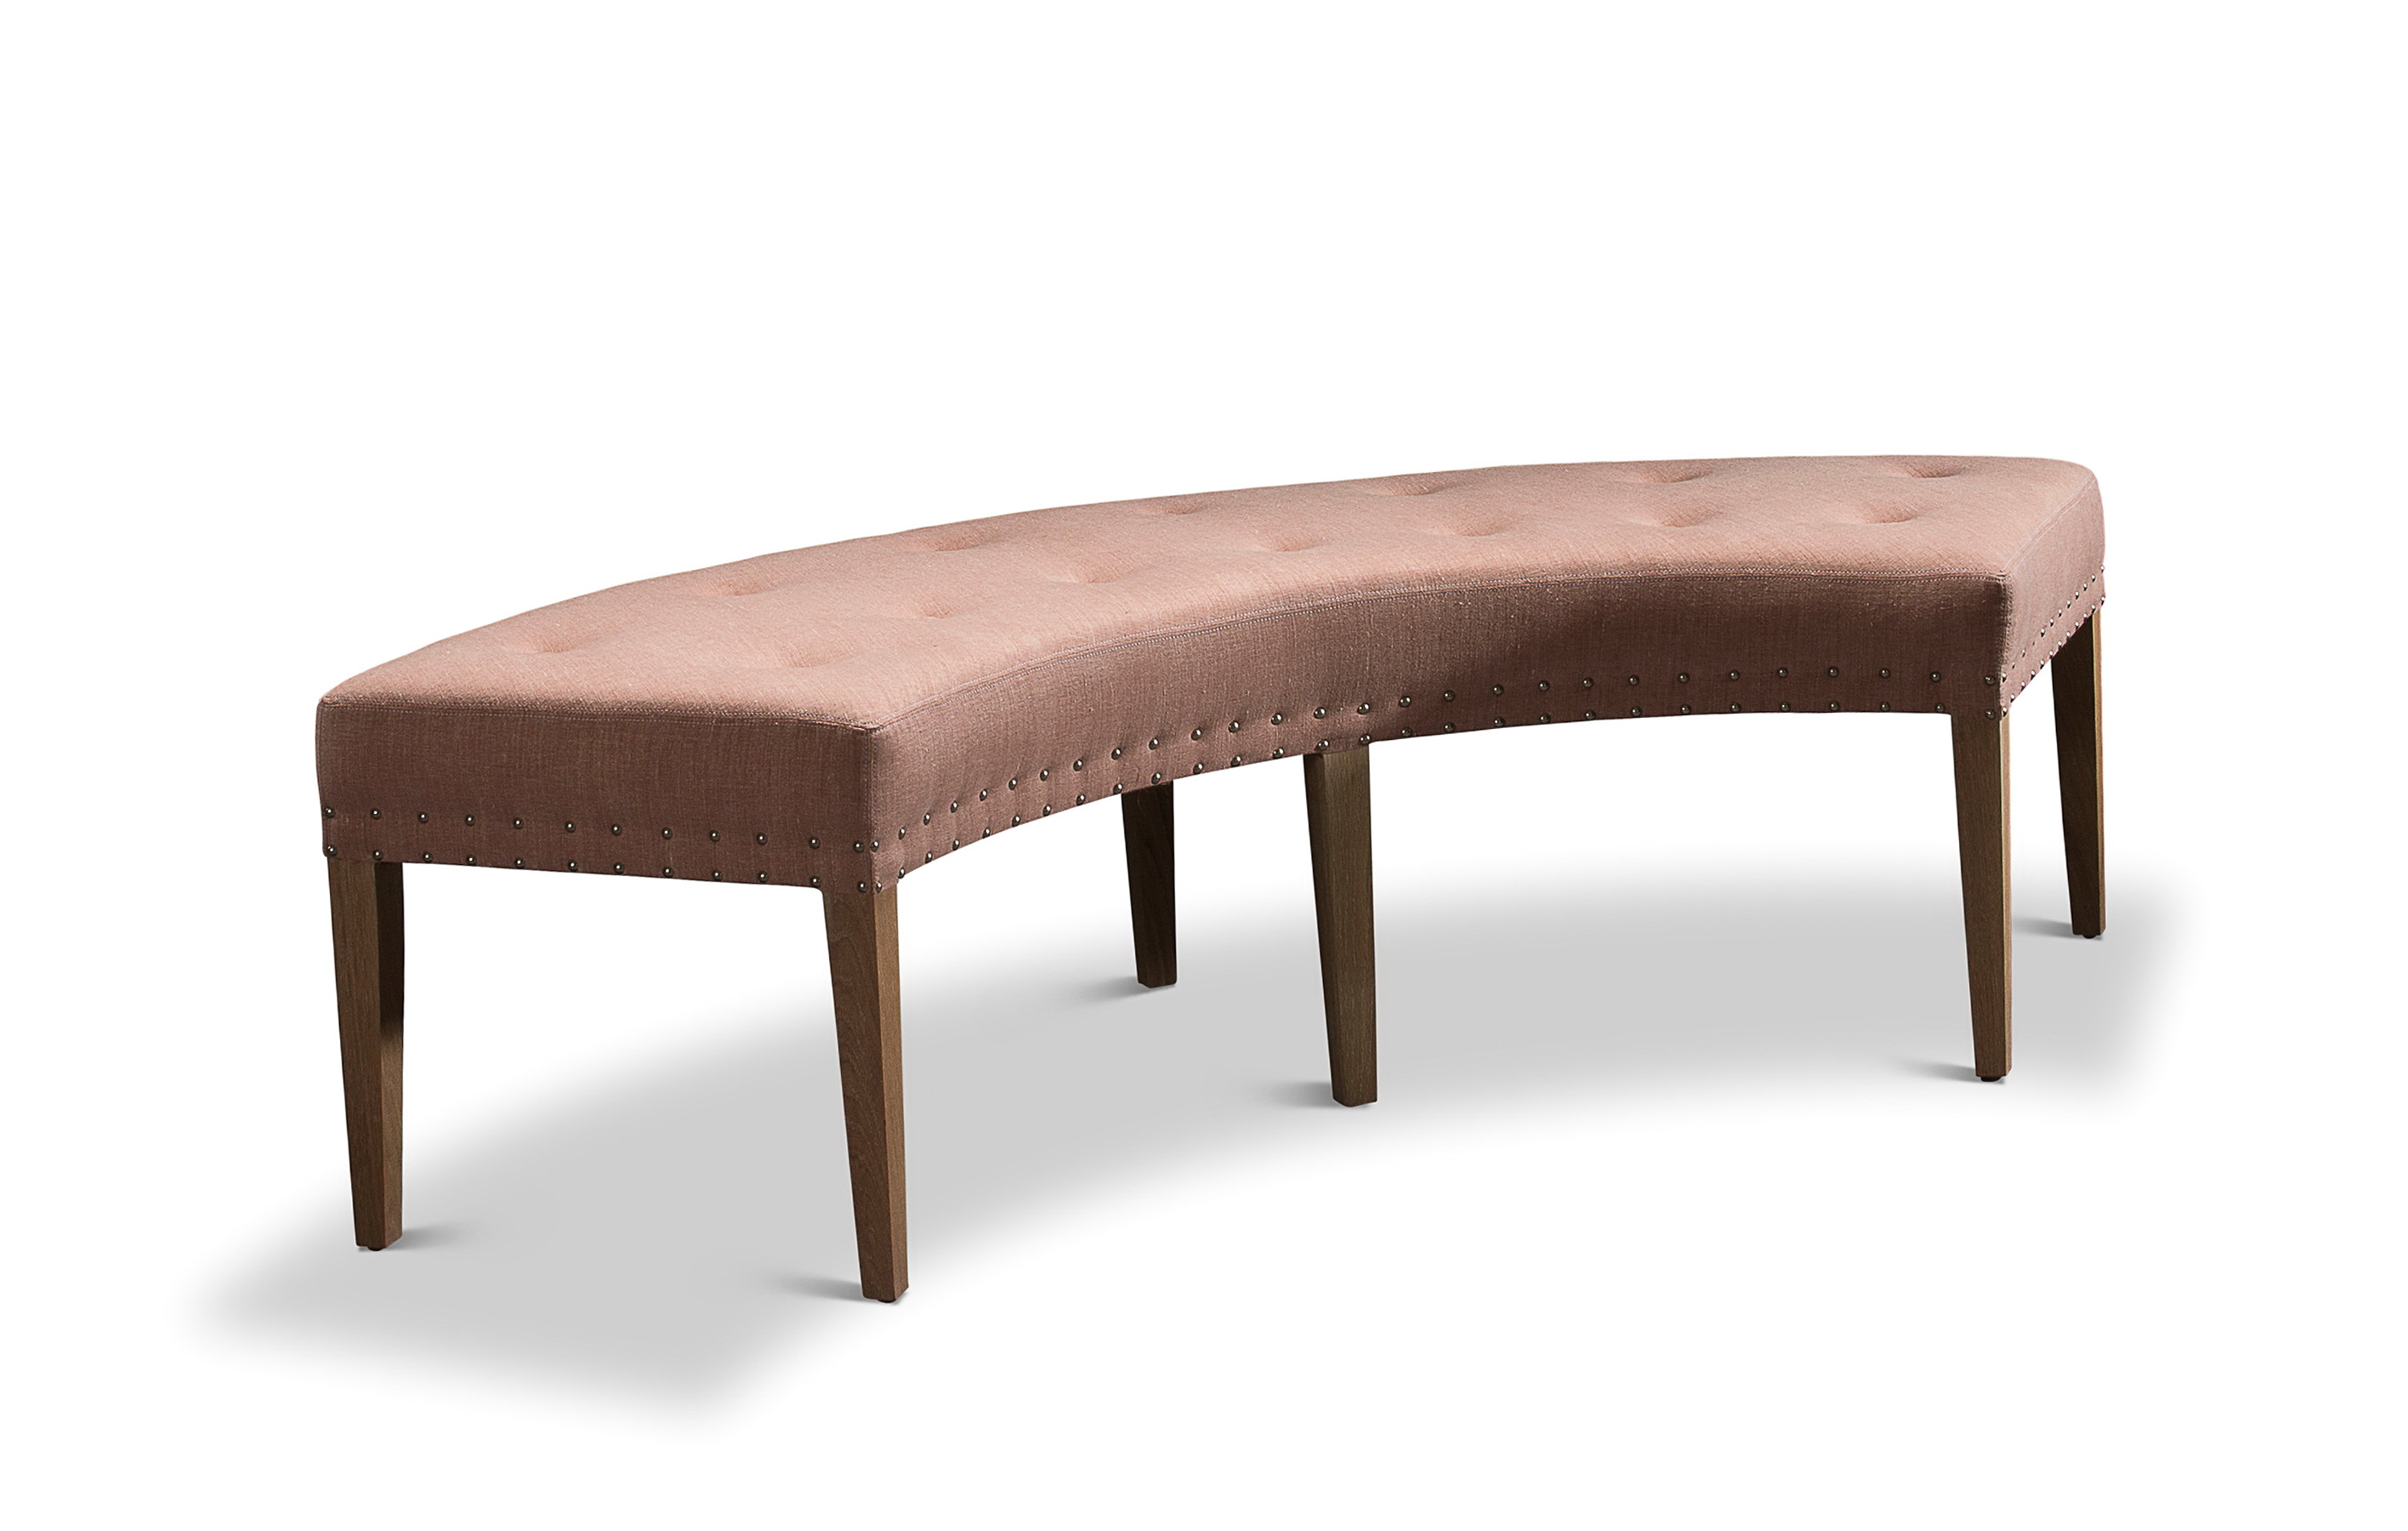 Curved Dining Room Bench